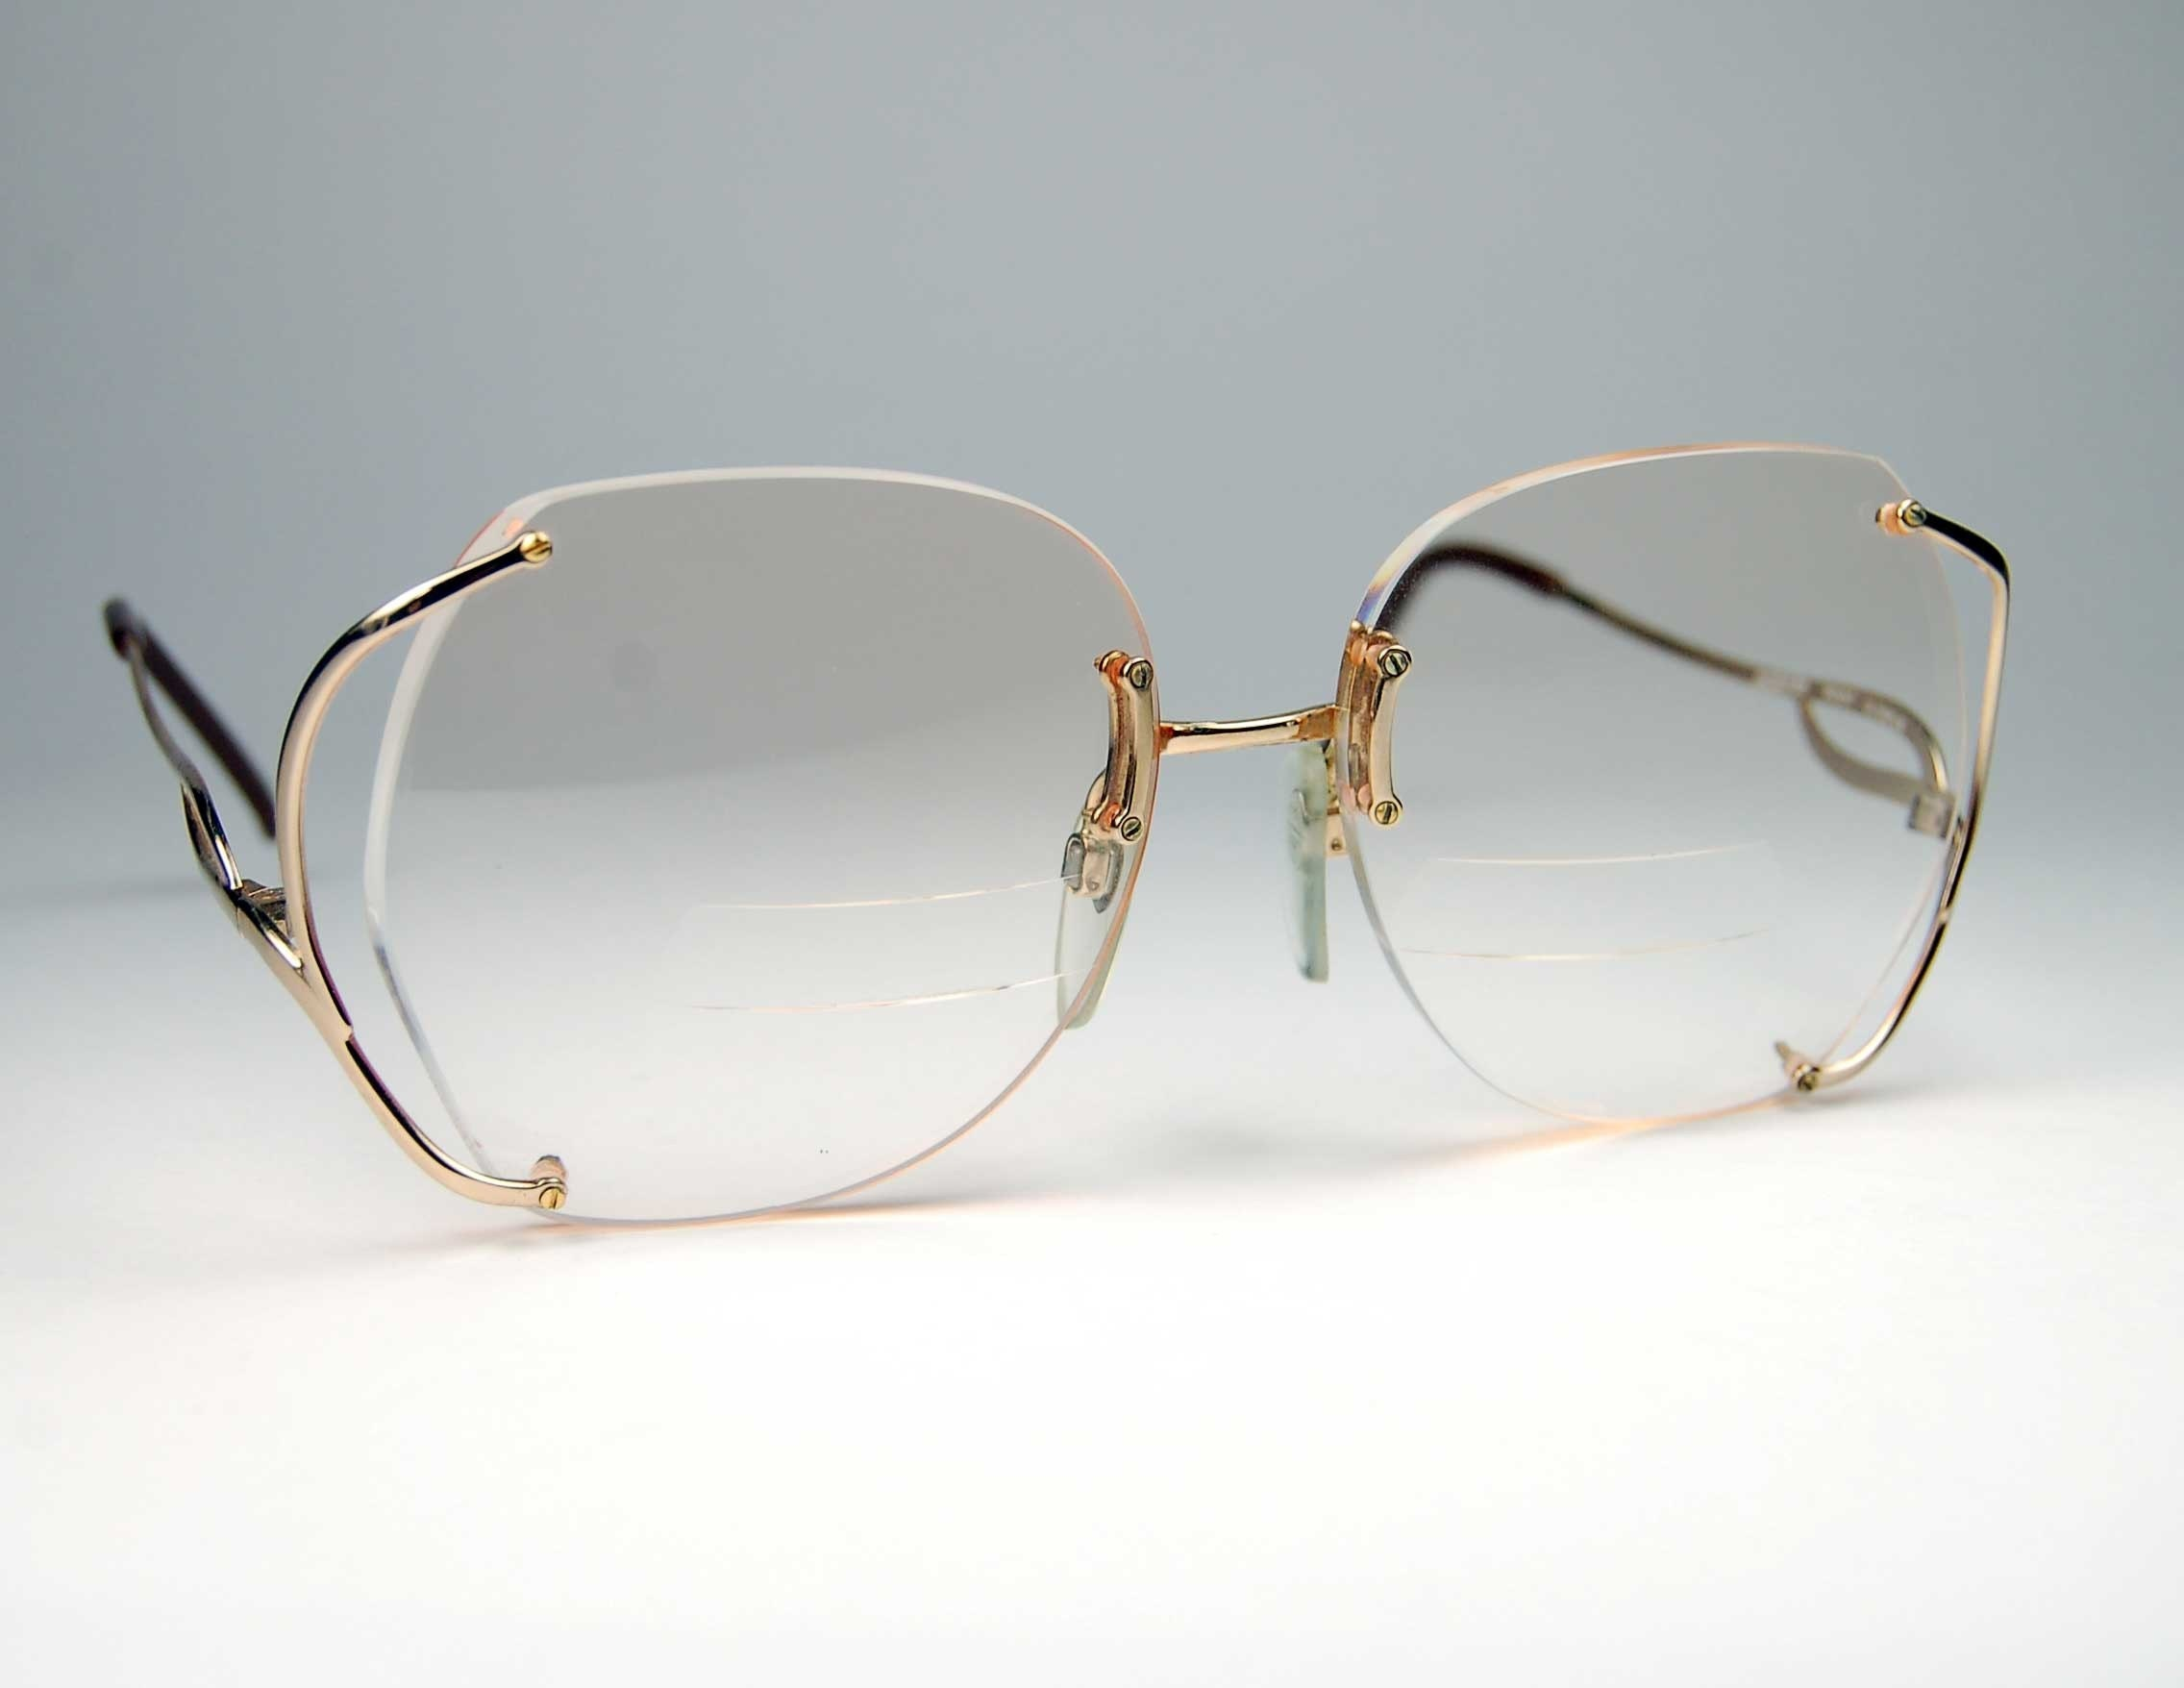 Eyeglass Frames Not Made By Luxottica : Vintage Luxottica Gold Rimless Eyeglass Frames made by ...